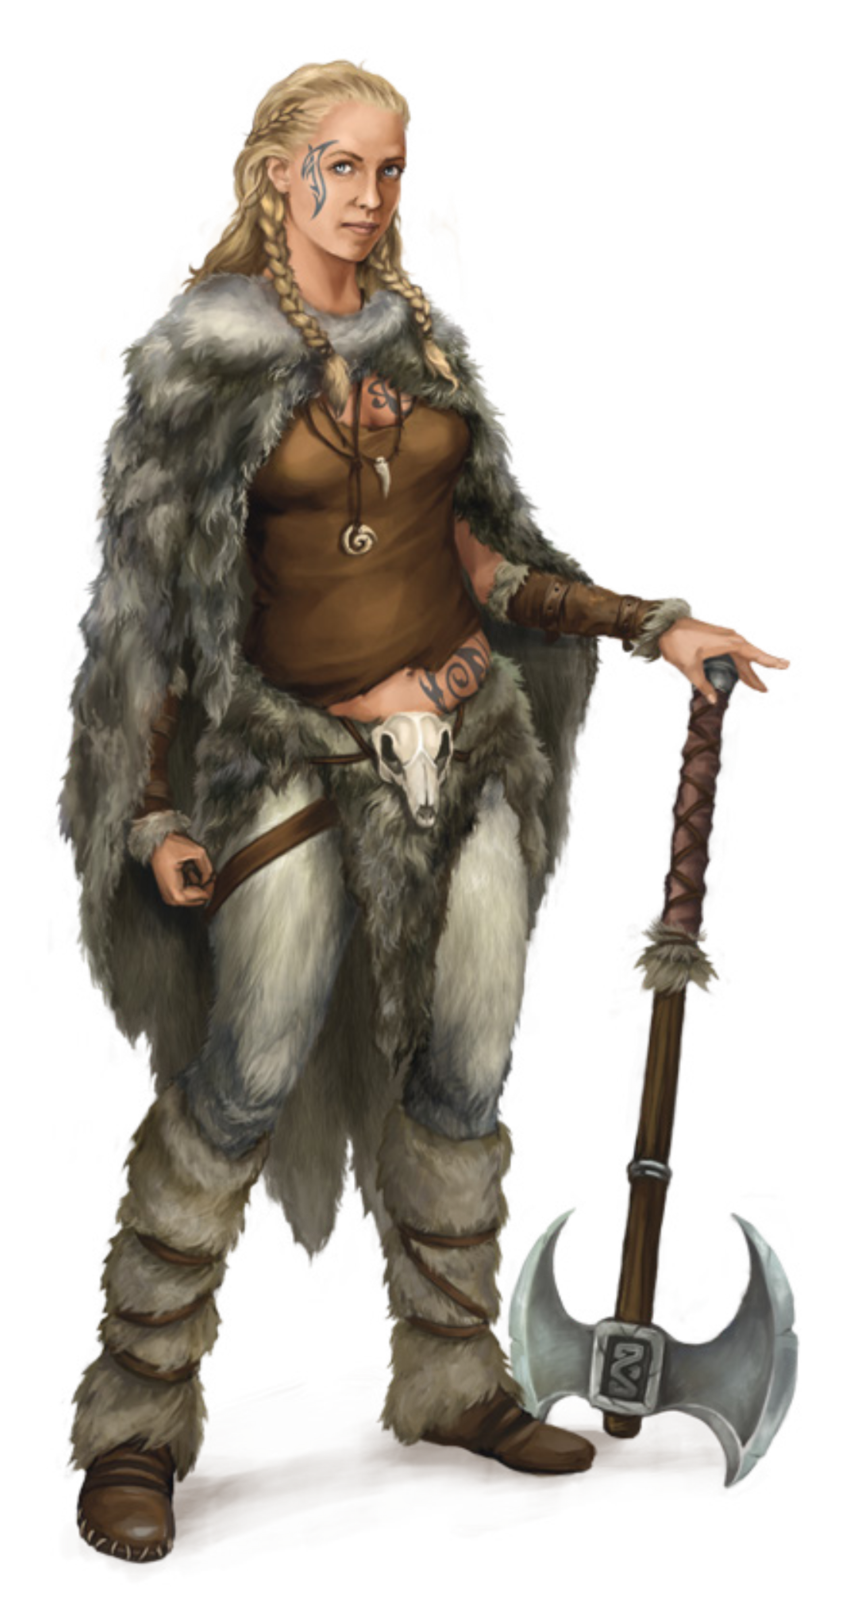 D&d character png. Tattooed nord babe d